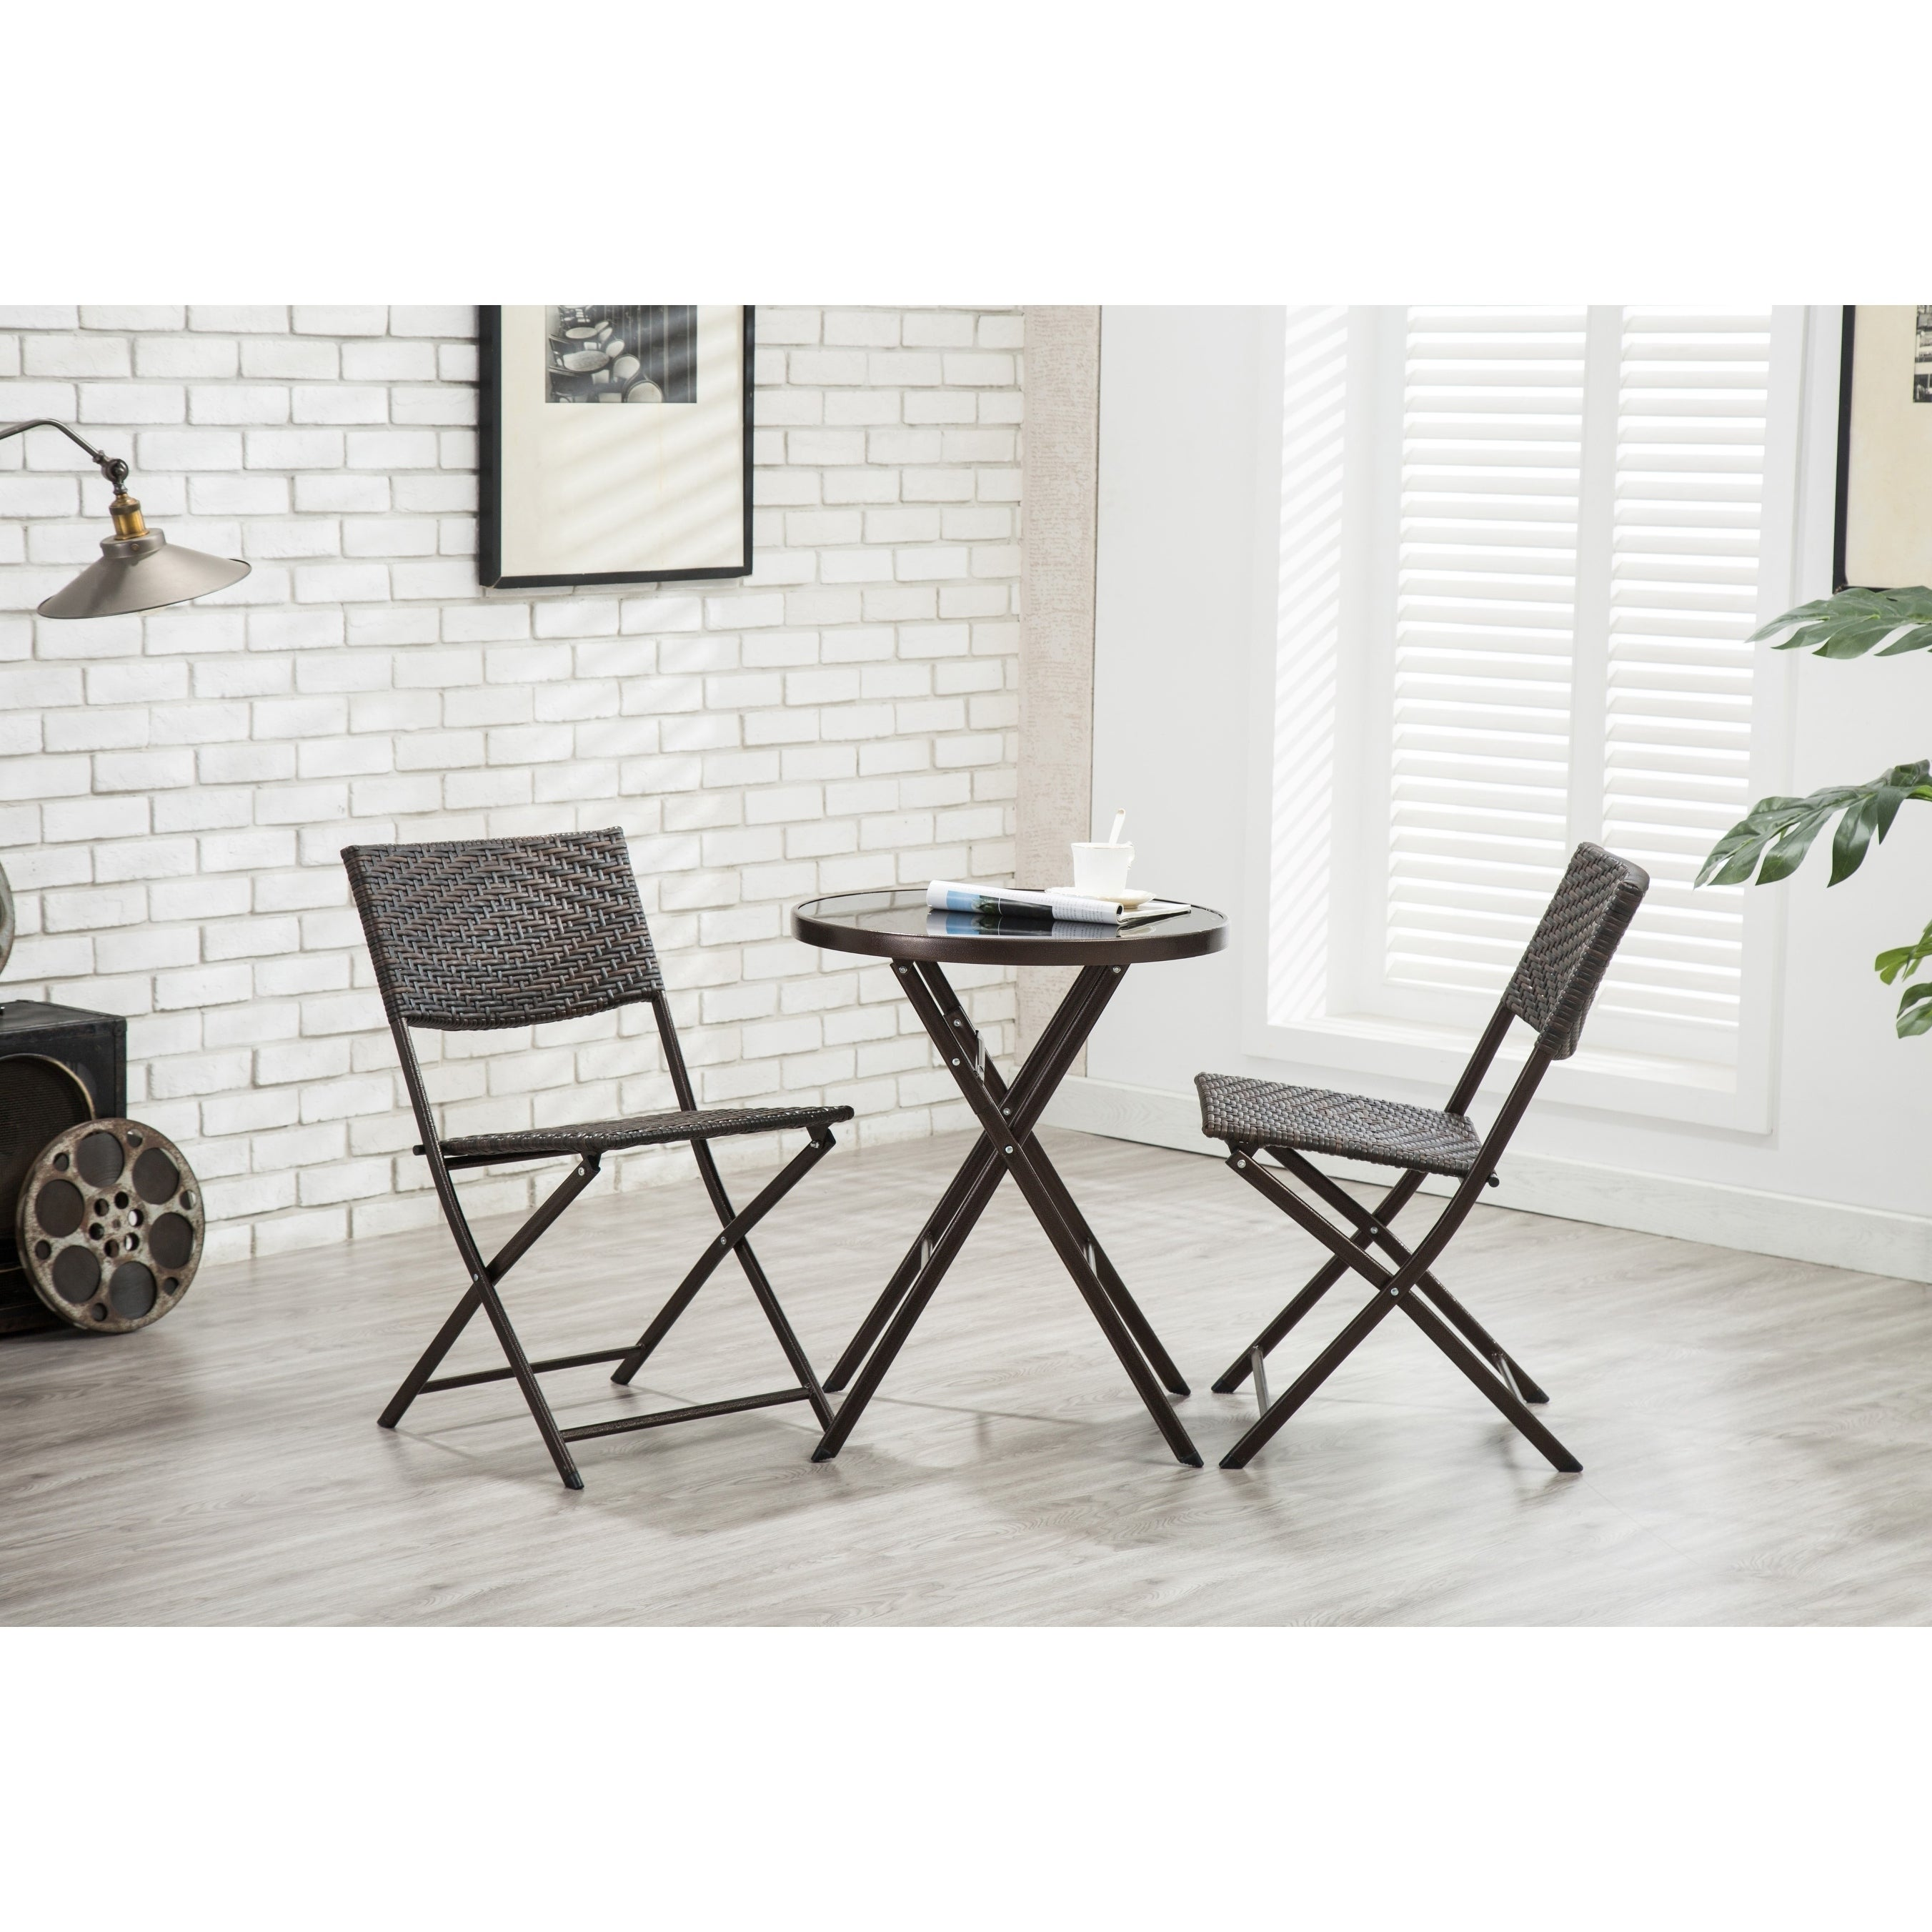 Porthos Home All-Weather Folding Metal Bistro Style Chair, Set of 2 (Brown)